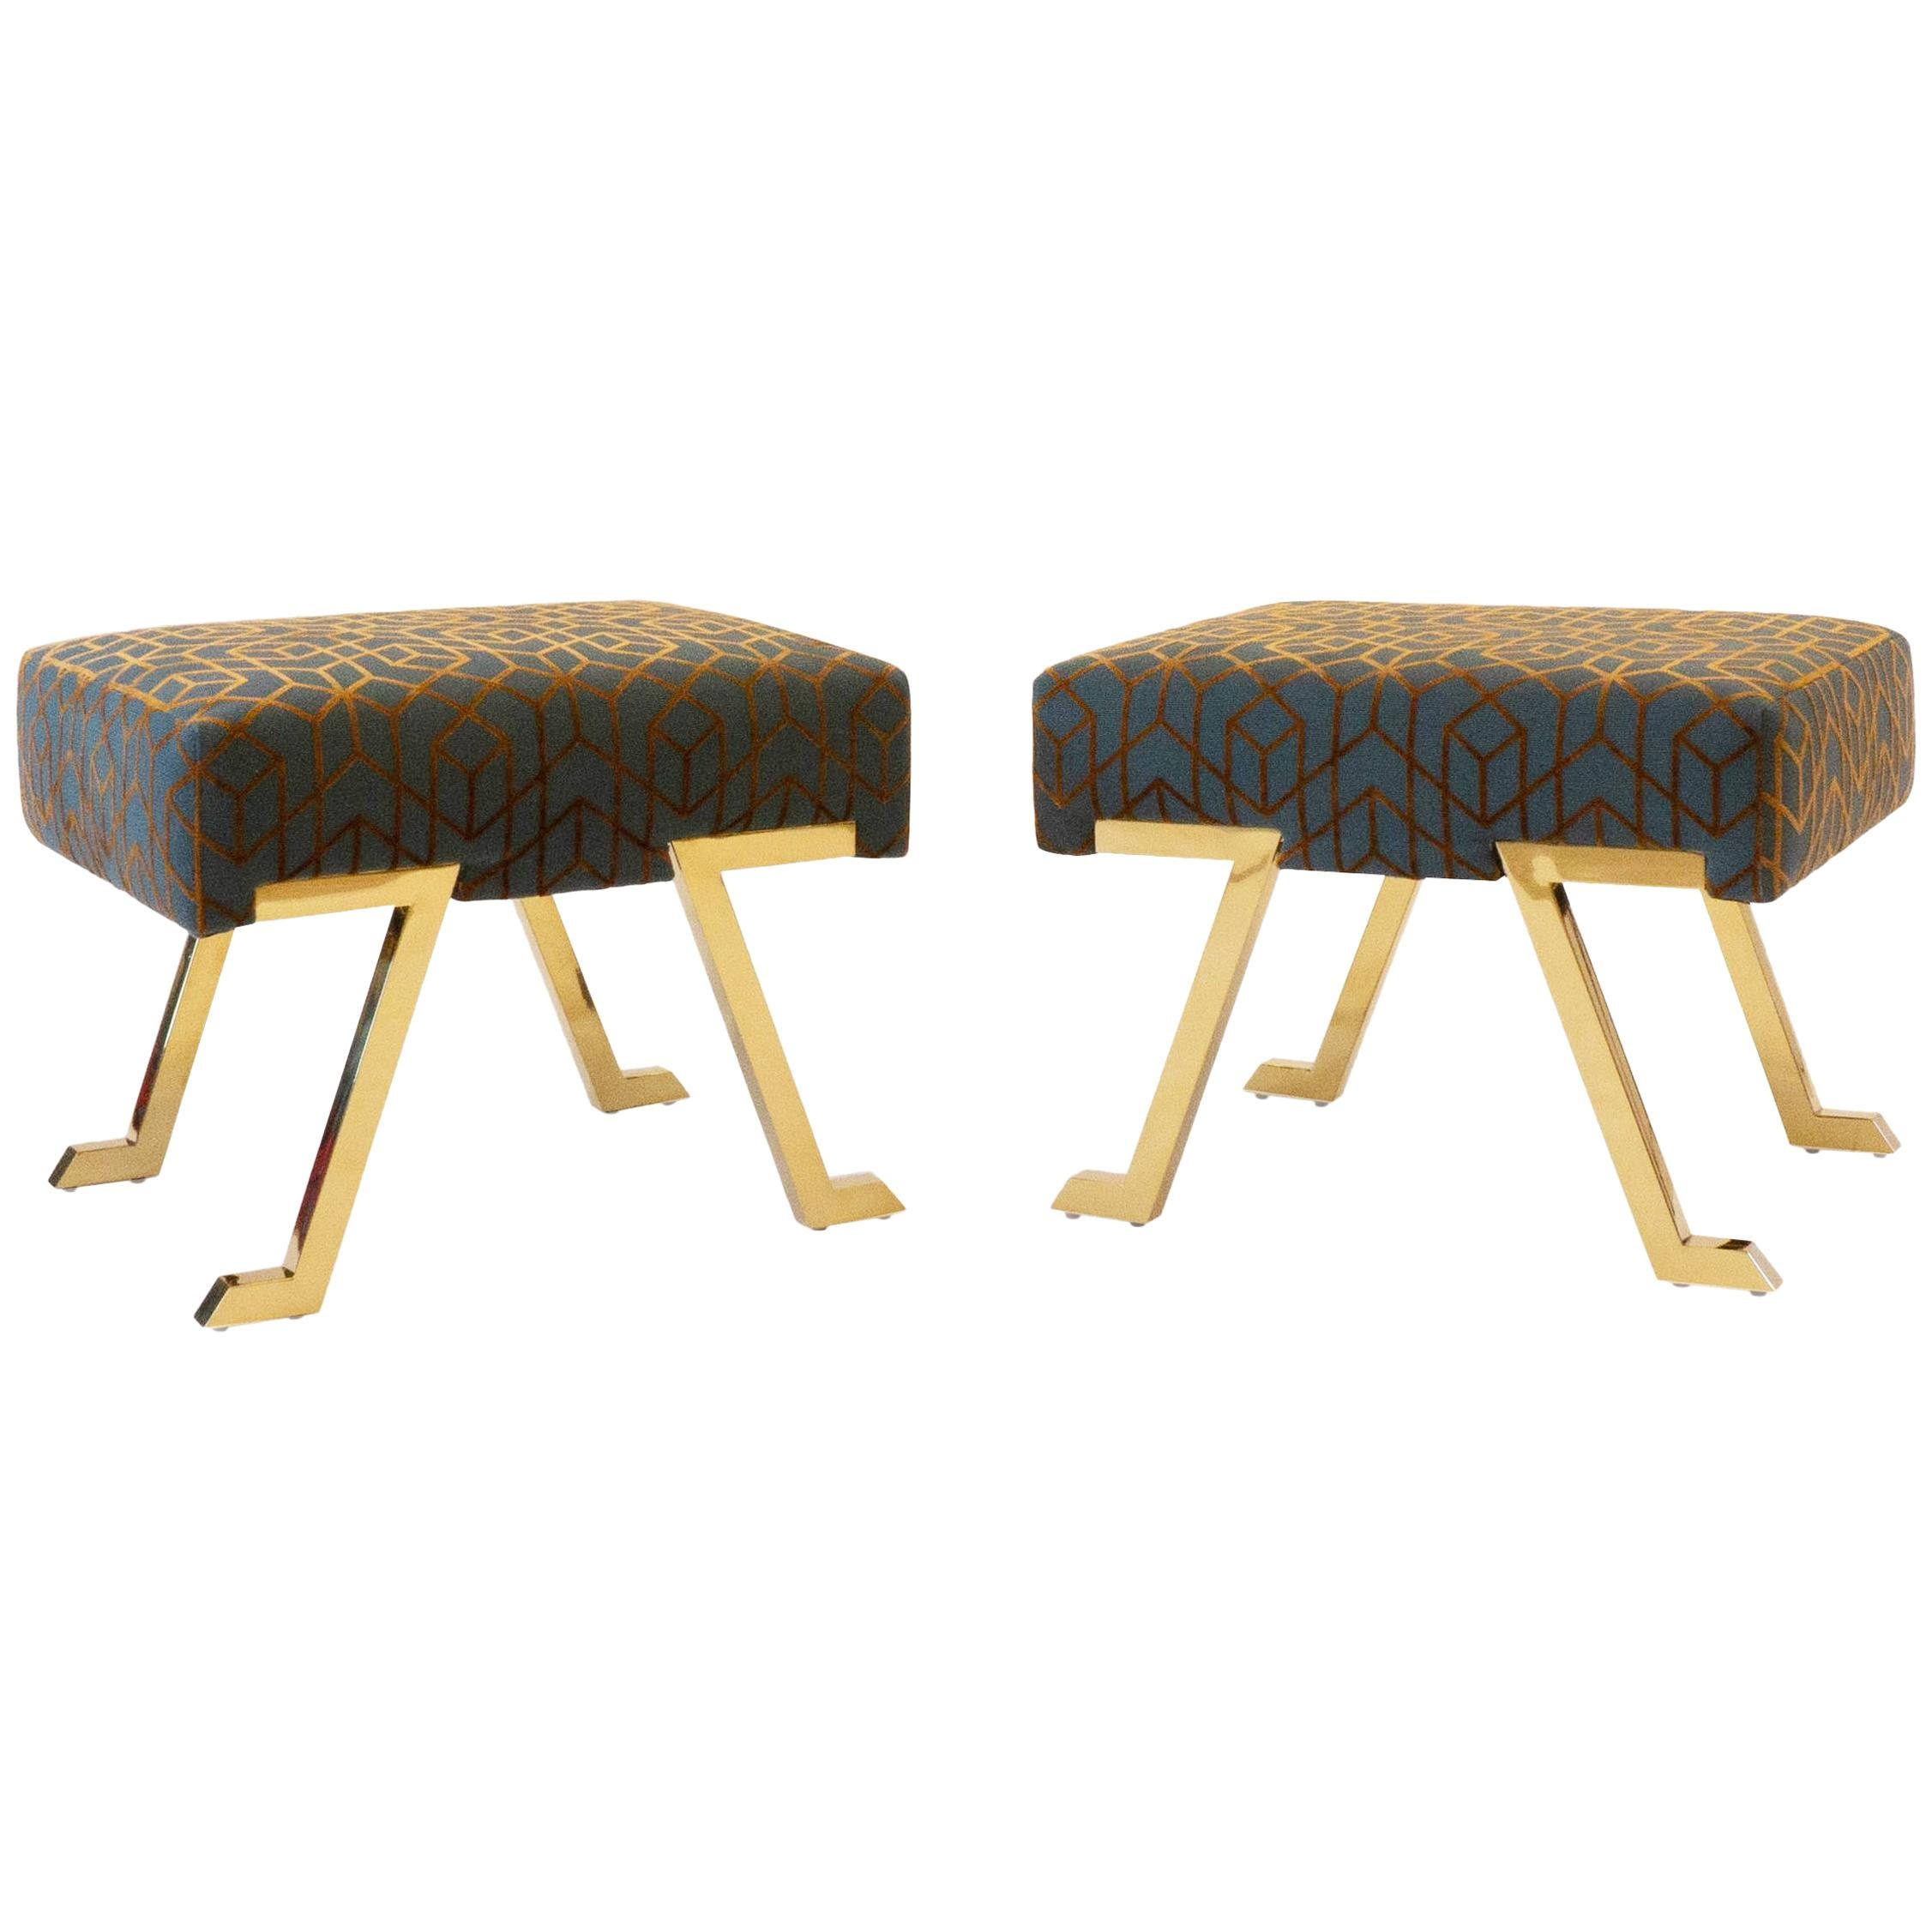 Upholstered Benches with Brass Legs